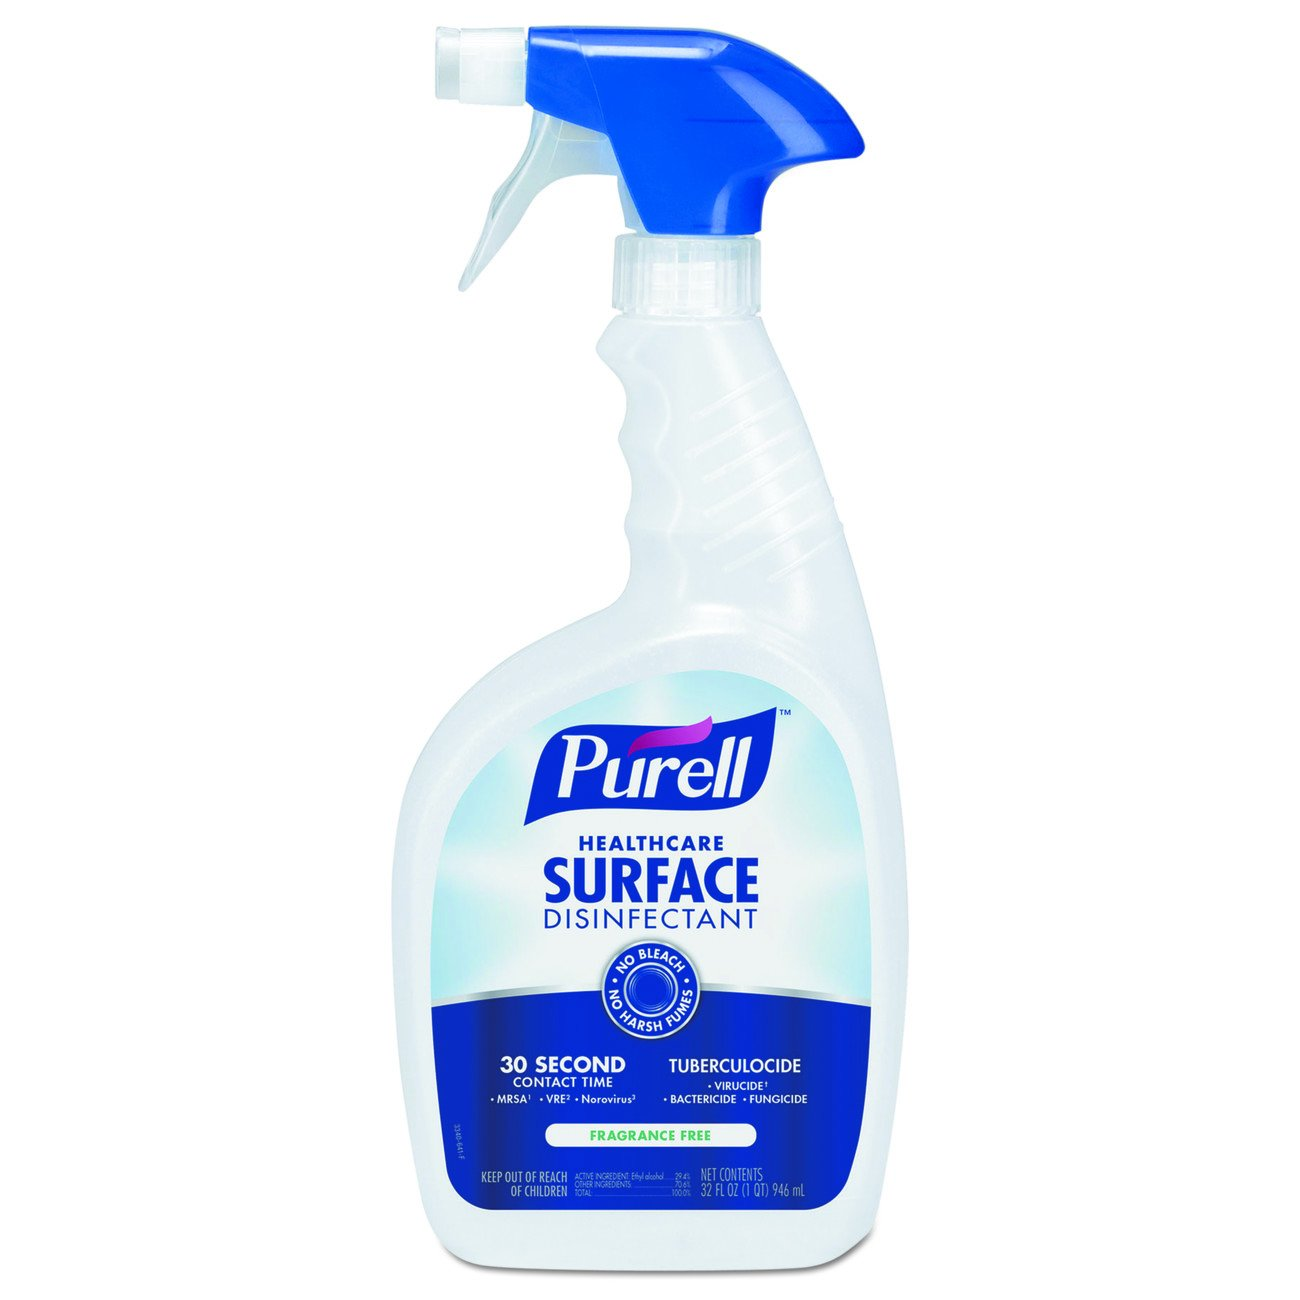 PURELL Healthcare Surface Disinfectant Spray 32 oz – Kills Norovirus in 30 Seconds, Fragrance Free, RTU (Pack of 12)